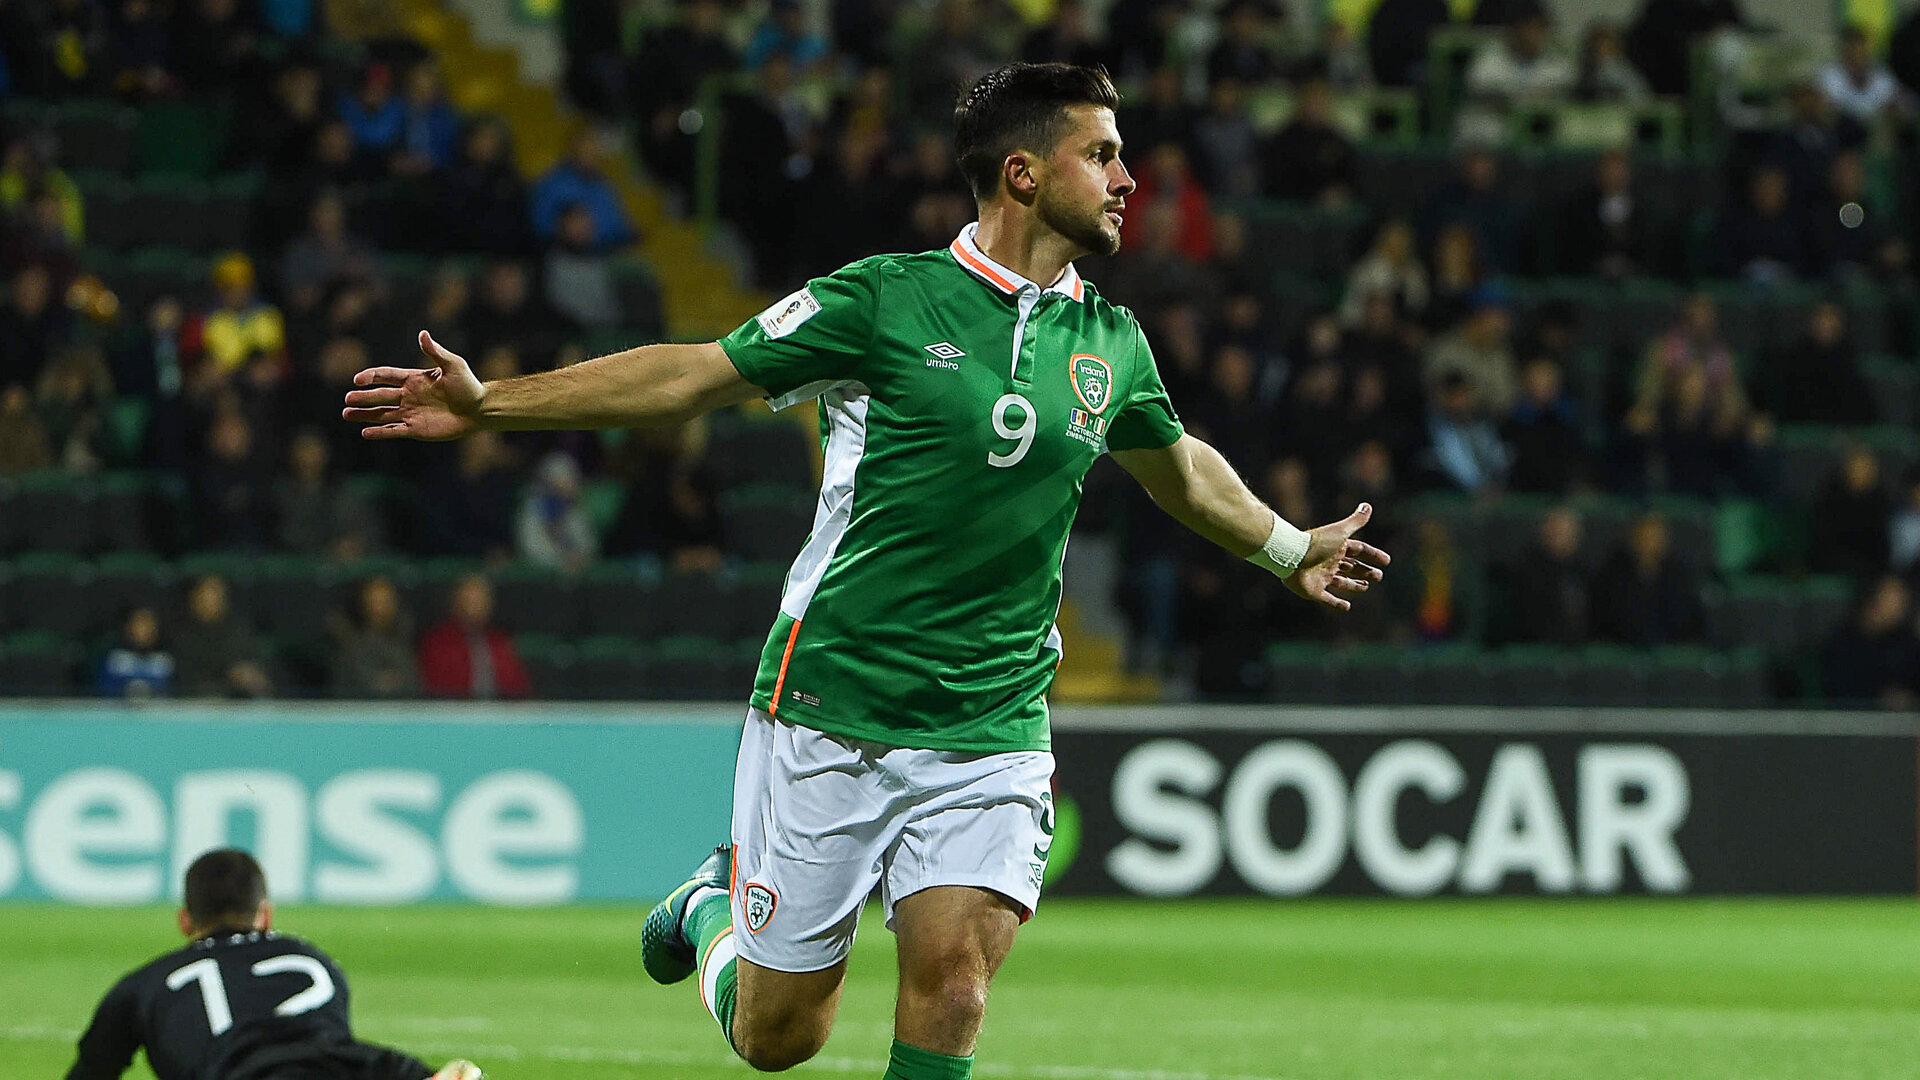 Chisinau , Moldova - 9 October 2016; Shane Long of Republic of Ireland celebrates after scoring his side's first goal during the FIFA World Cup Group D Qualifier match between Moldova and Republic of Ireland at Stadionul Zimbru in Chisinau, Moldova. (Photo By David Maher/Sportsfile via Getty Images)